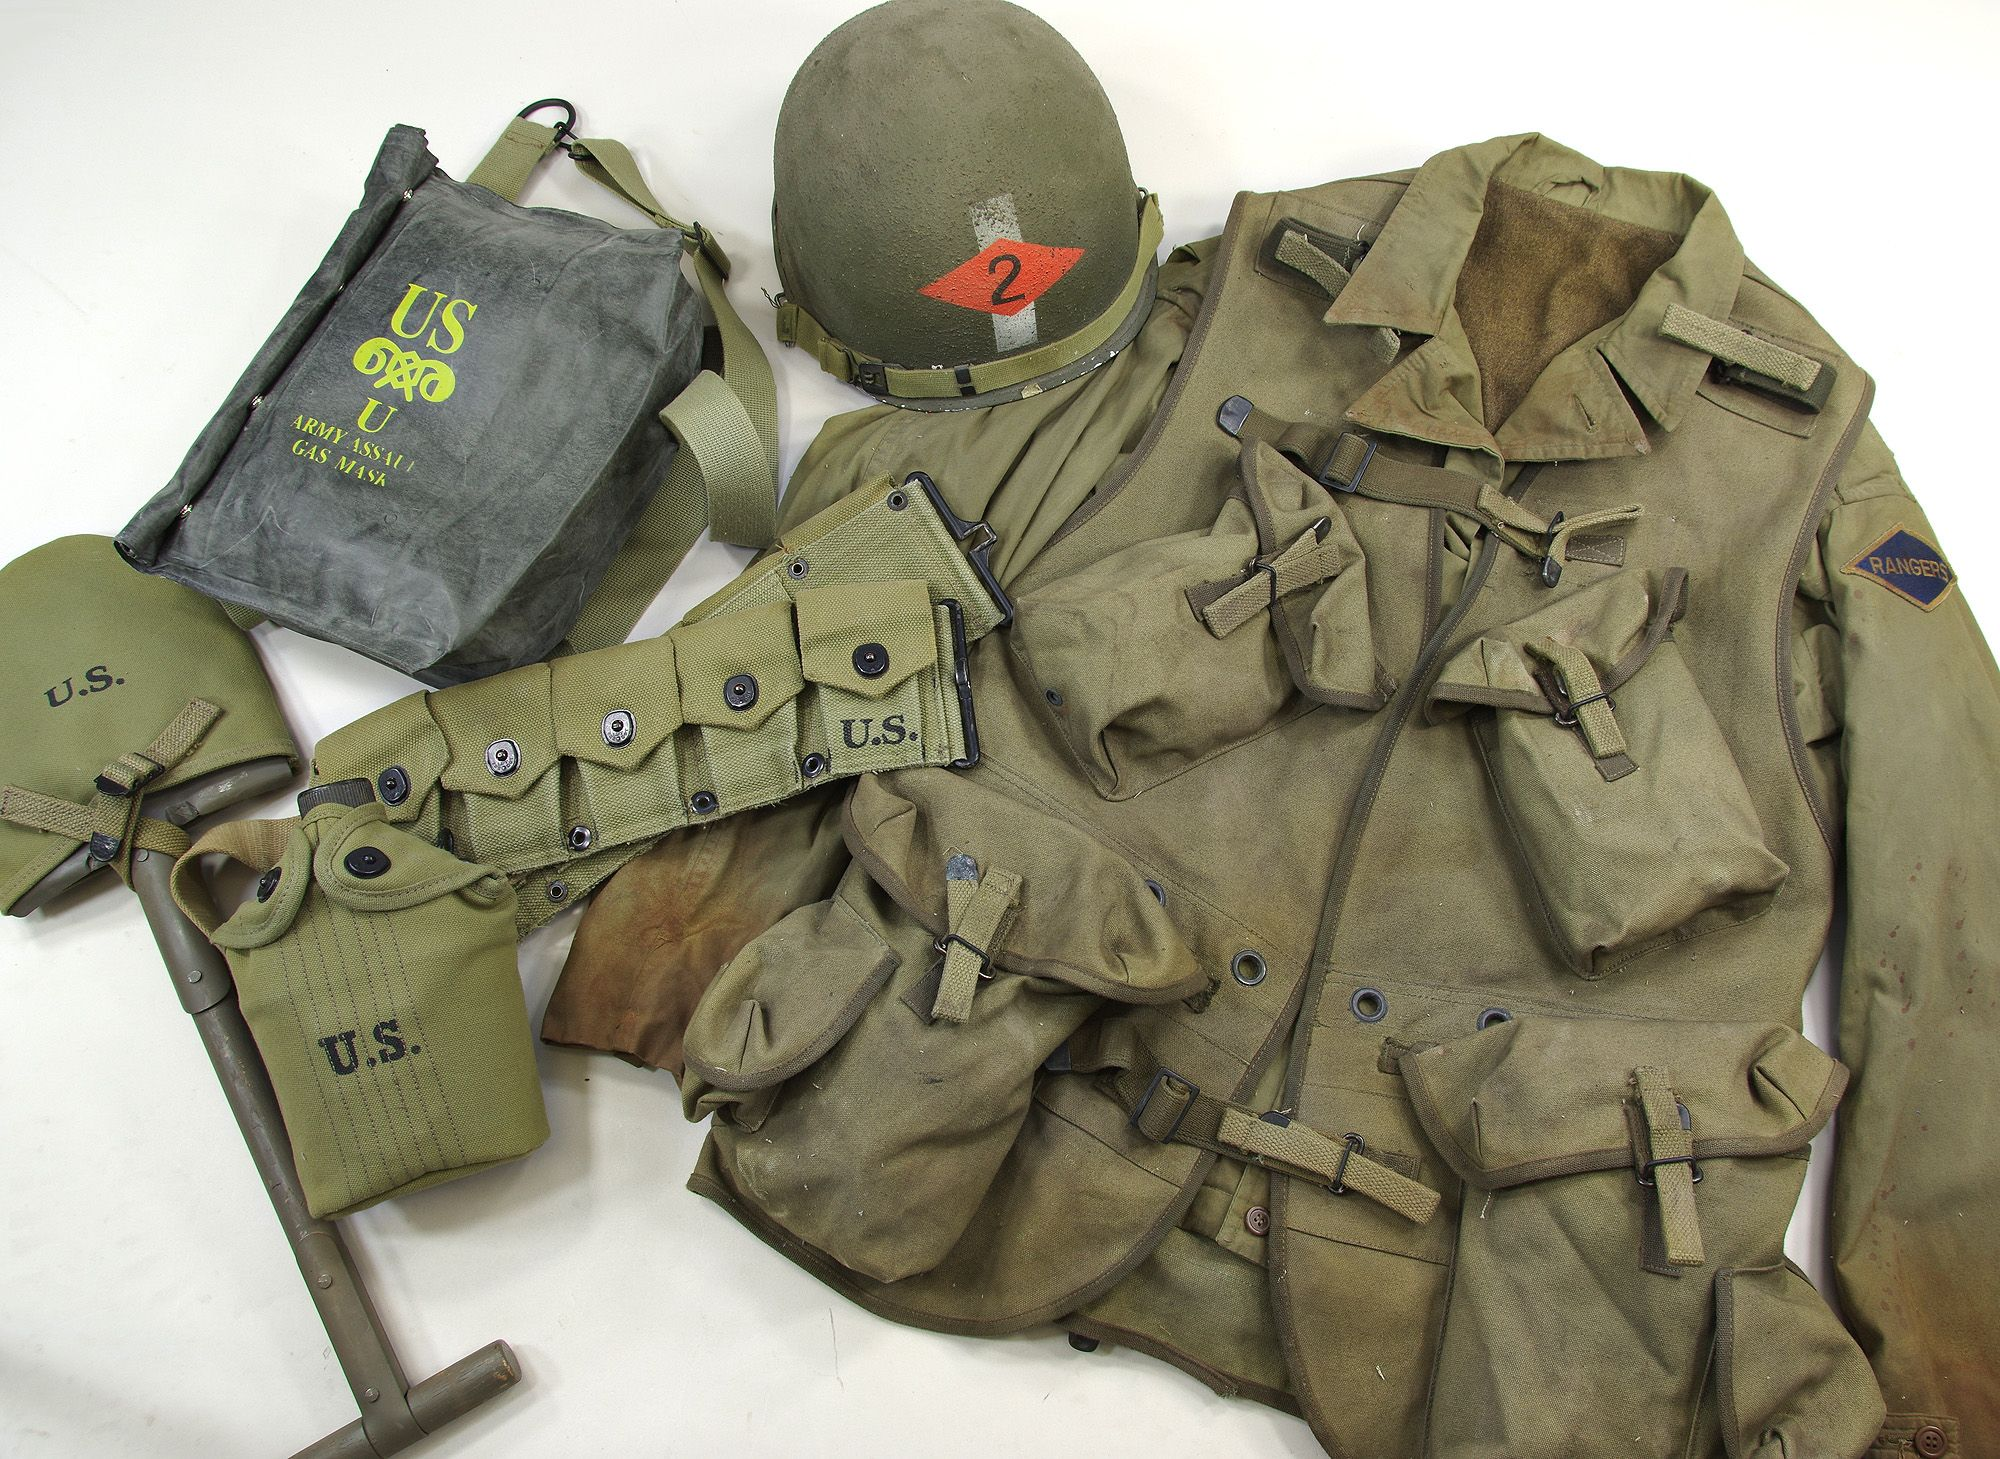 Day reenactment ww ii pictures pinterest - Ww2 Infantry Field Gear